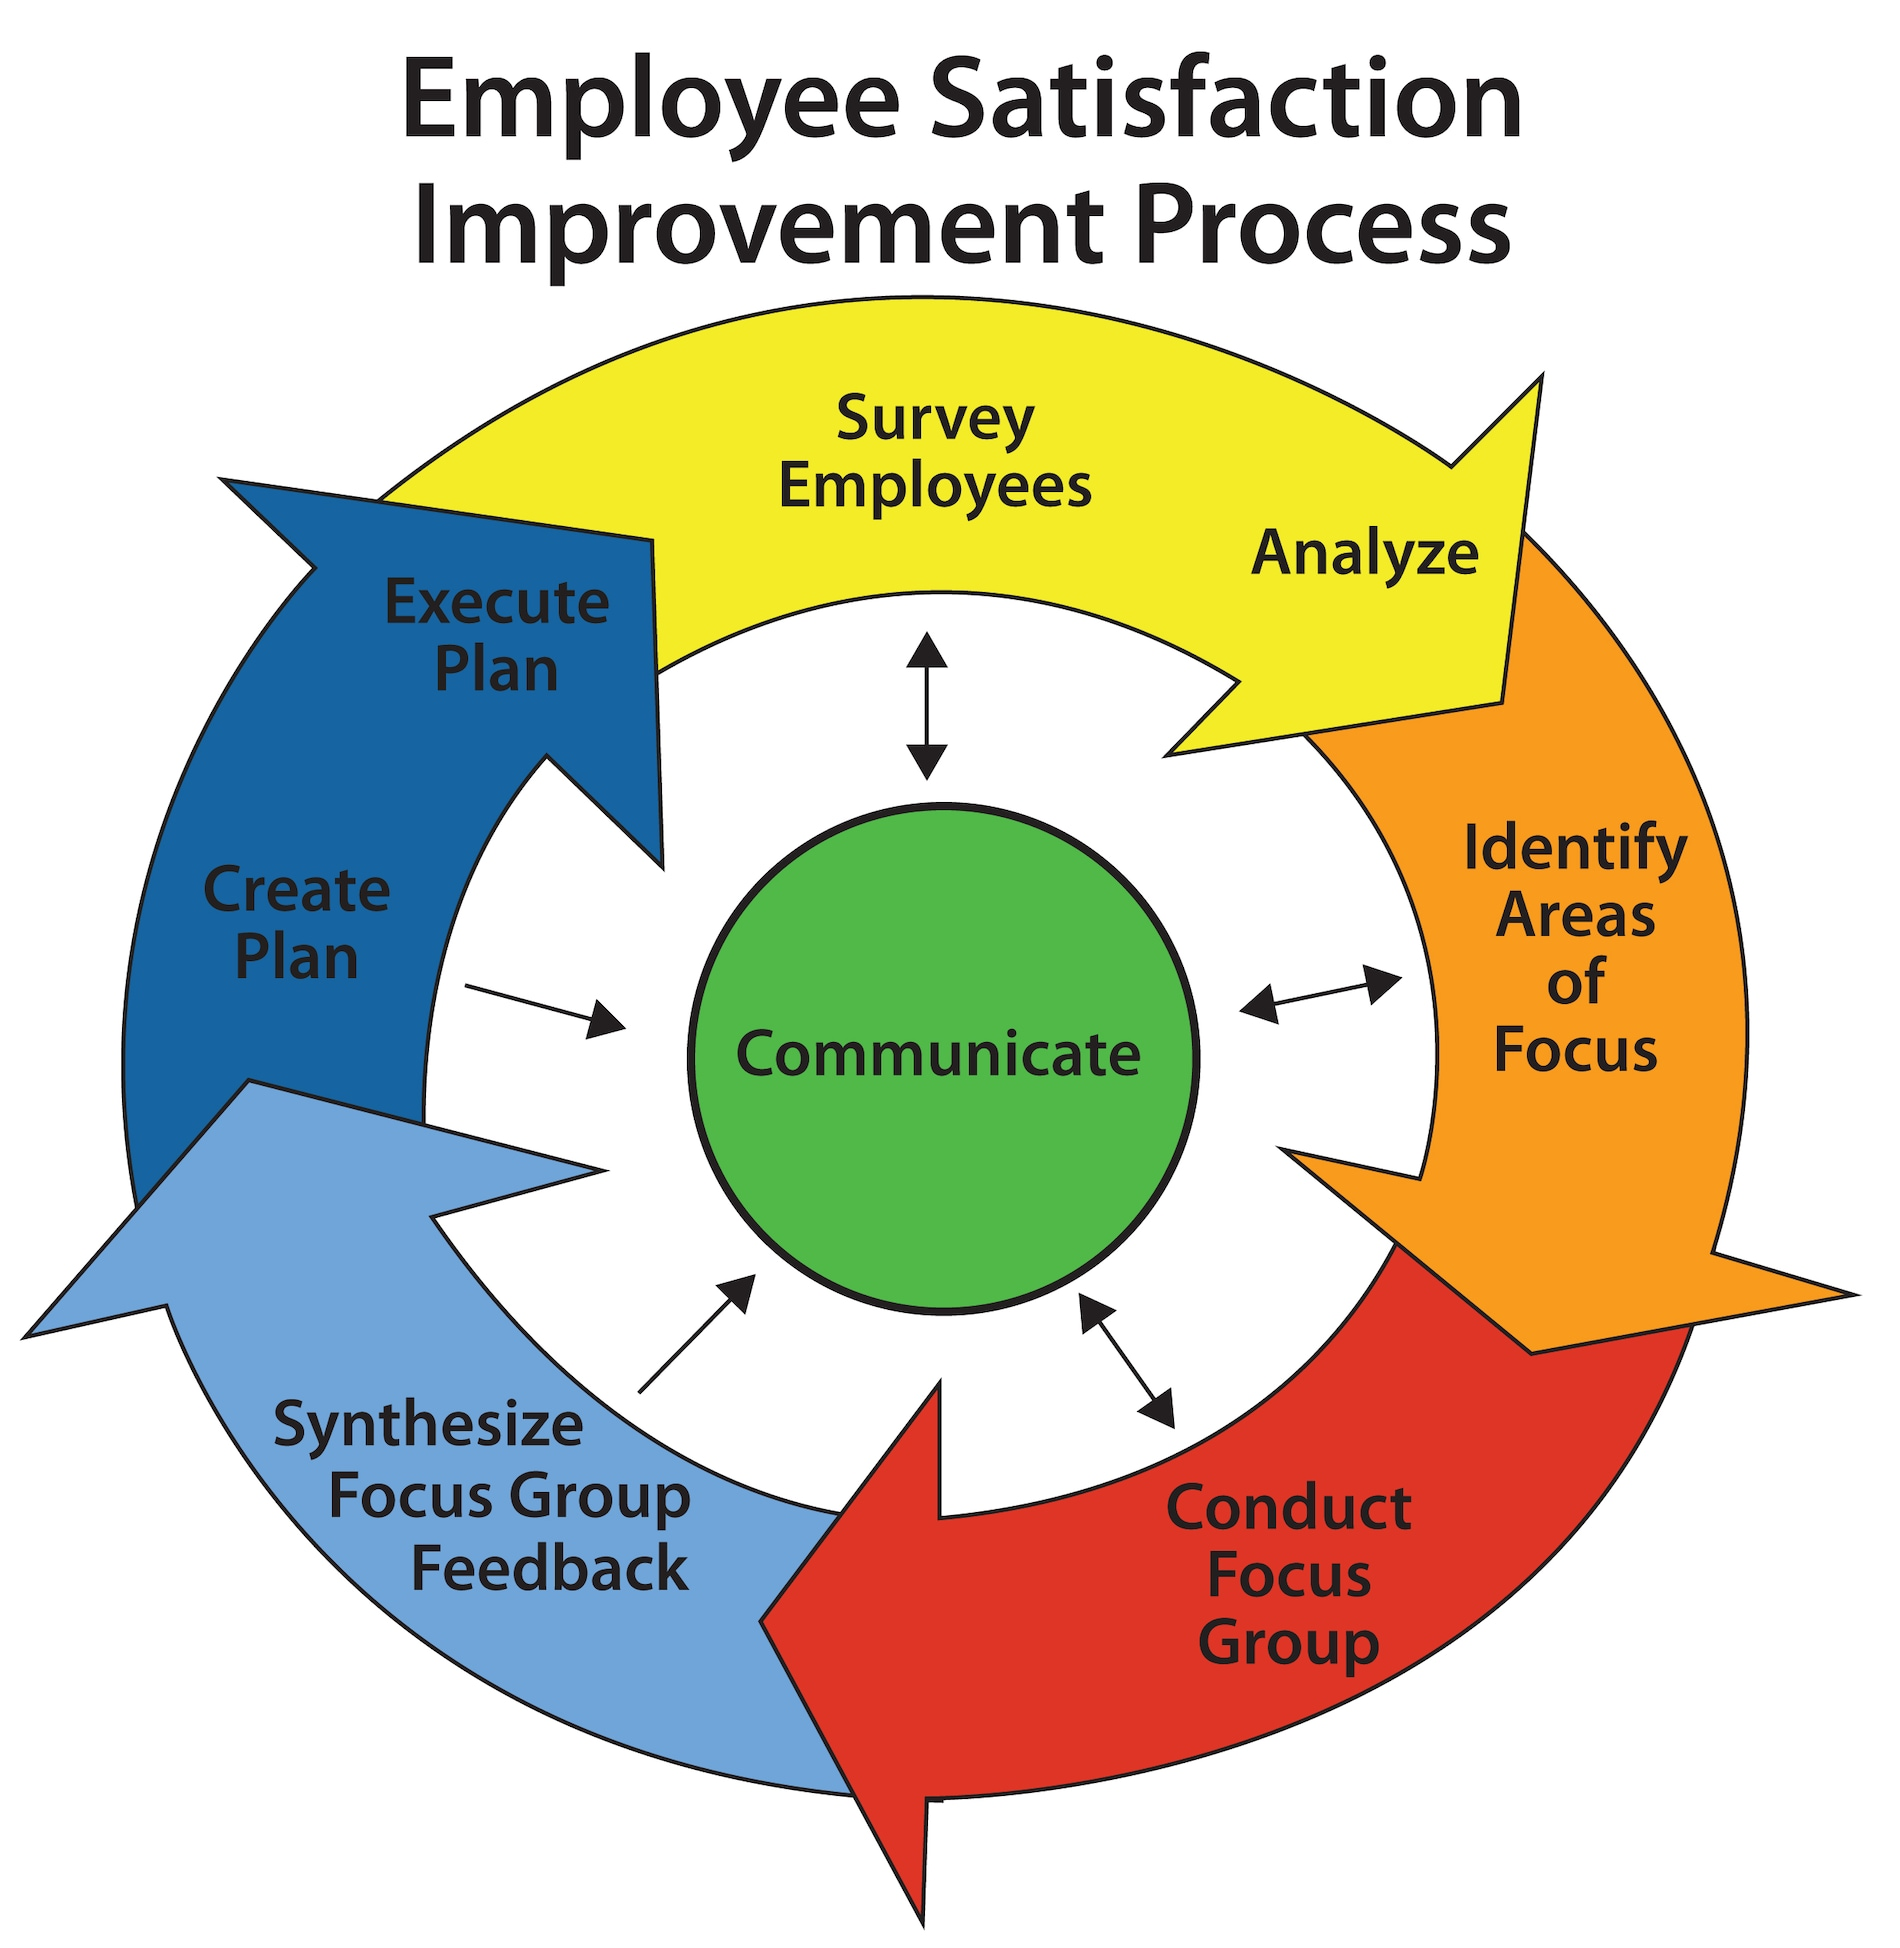 """MidwayUSA recently completed its annual Baldrige-Aligned Employee Satisfaction and Engagement survey. While voluntary, nearly 90% of MidwayUSA's Employees took this survey, providing valuable feedback to help the organization improve. The impressive score of 83% marks the eighth year in a row of achieving a score of 80% or above.  MidwayUSA's survey performance places the Company in the top quartile of retail-industry companies utilizing the survey provider, Beyond Feedback, and surpasses the retail-industry average by 15 percentage points.  """"At MidwayUSA, Employee Satisfaction is our #2 Company Goal, right behind Customer Satisfaction,"""" said MidwayUSA President Matt Fleming.  """"We want our Employees to think of MidwayUSA as a great place to work. Our Employee Satisfaction and Engagement process allows us to listen and learn from our great Employees so we can make the necessary improvements to meet their needs and the needs of our other Stakeholders. I'm humbled so many Employees take our voluntary survey; it means we have a great deal of trust in the organization and faith in the process.""""   MidwayUSA's approach to Employee satisfaction is in alignment with its dedication to the Baldrige Criteria for Performance Excellence and utilizes a systematic process which incorporates survey responses into focus groups and action plans to drive improvement.  Utilizing a Baldrige-aligned survey tool, developed through a partnership with Beyond Feedback, allows the organization to identify what key requirements are important to Employees, how important those requirements are, and how Employee satisfaction can be improved to better meet those key requirements.  This approach allows the organization to focus its efforts on those initiatives likely to have the most direct impact on Employees' satisfaction.  """"I used to hate ESAT surveys,"""" said Larry Potterfield, MidwayUSA Founder and CEO.  """"They weren't actionable and weren't helping us define opportunities for improvement.  Then, """